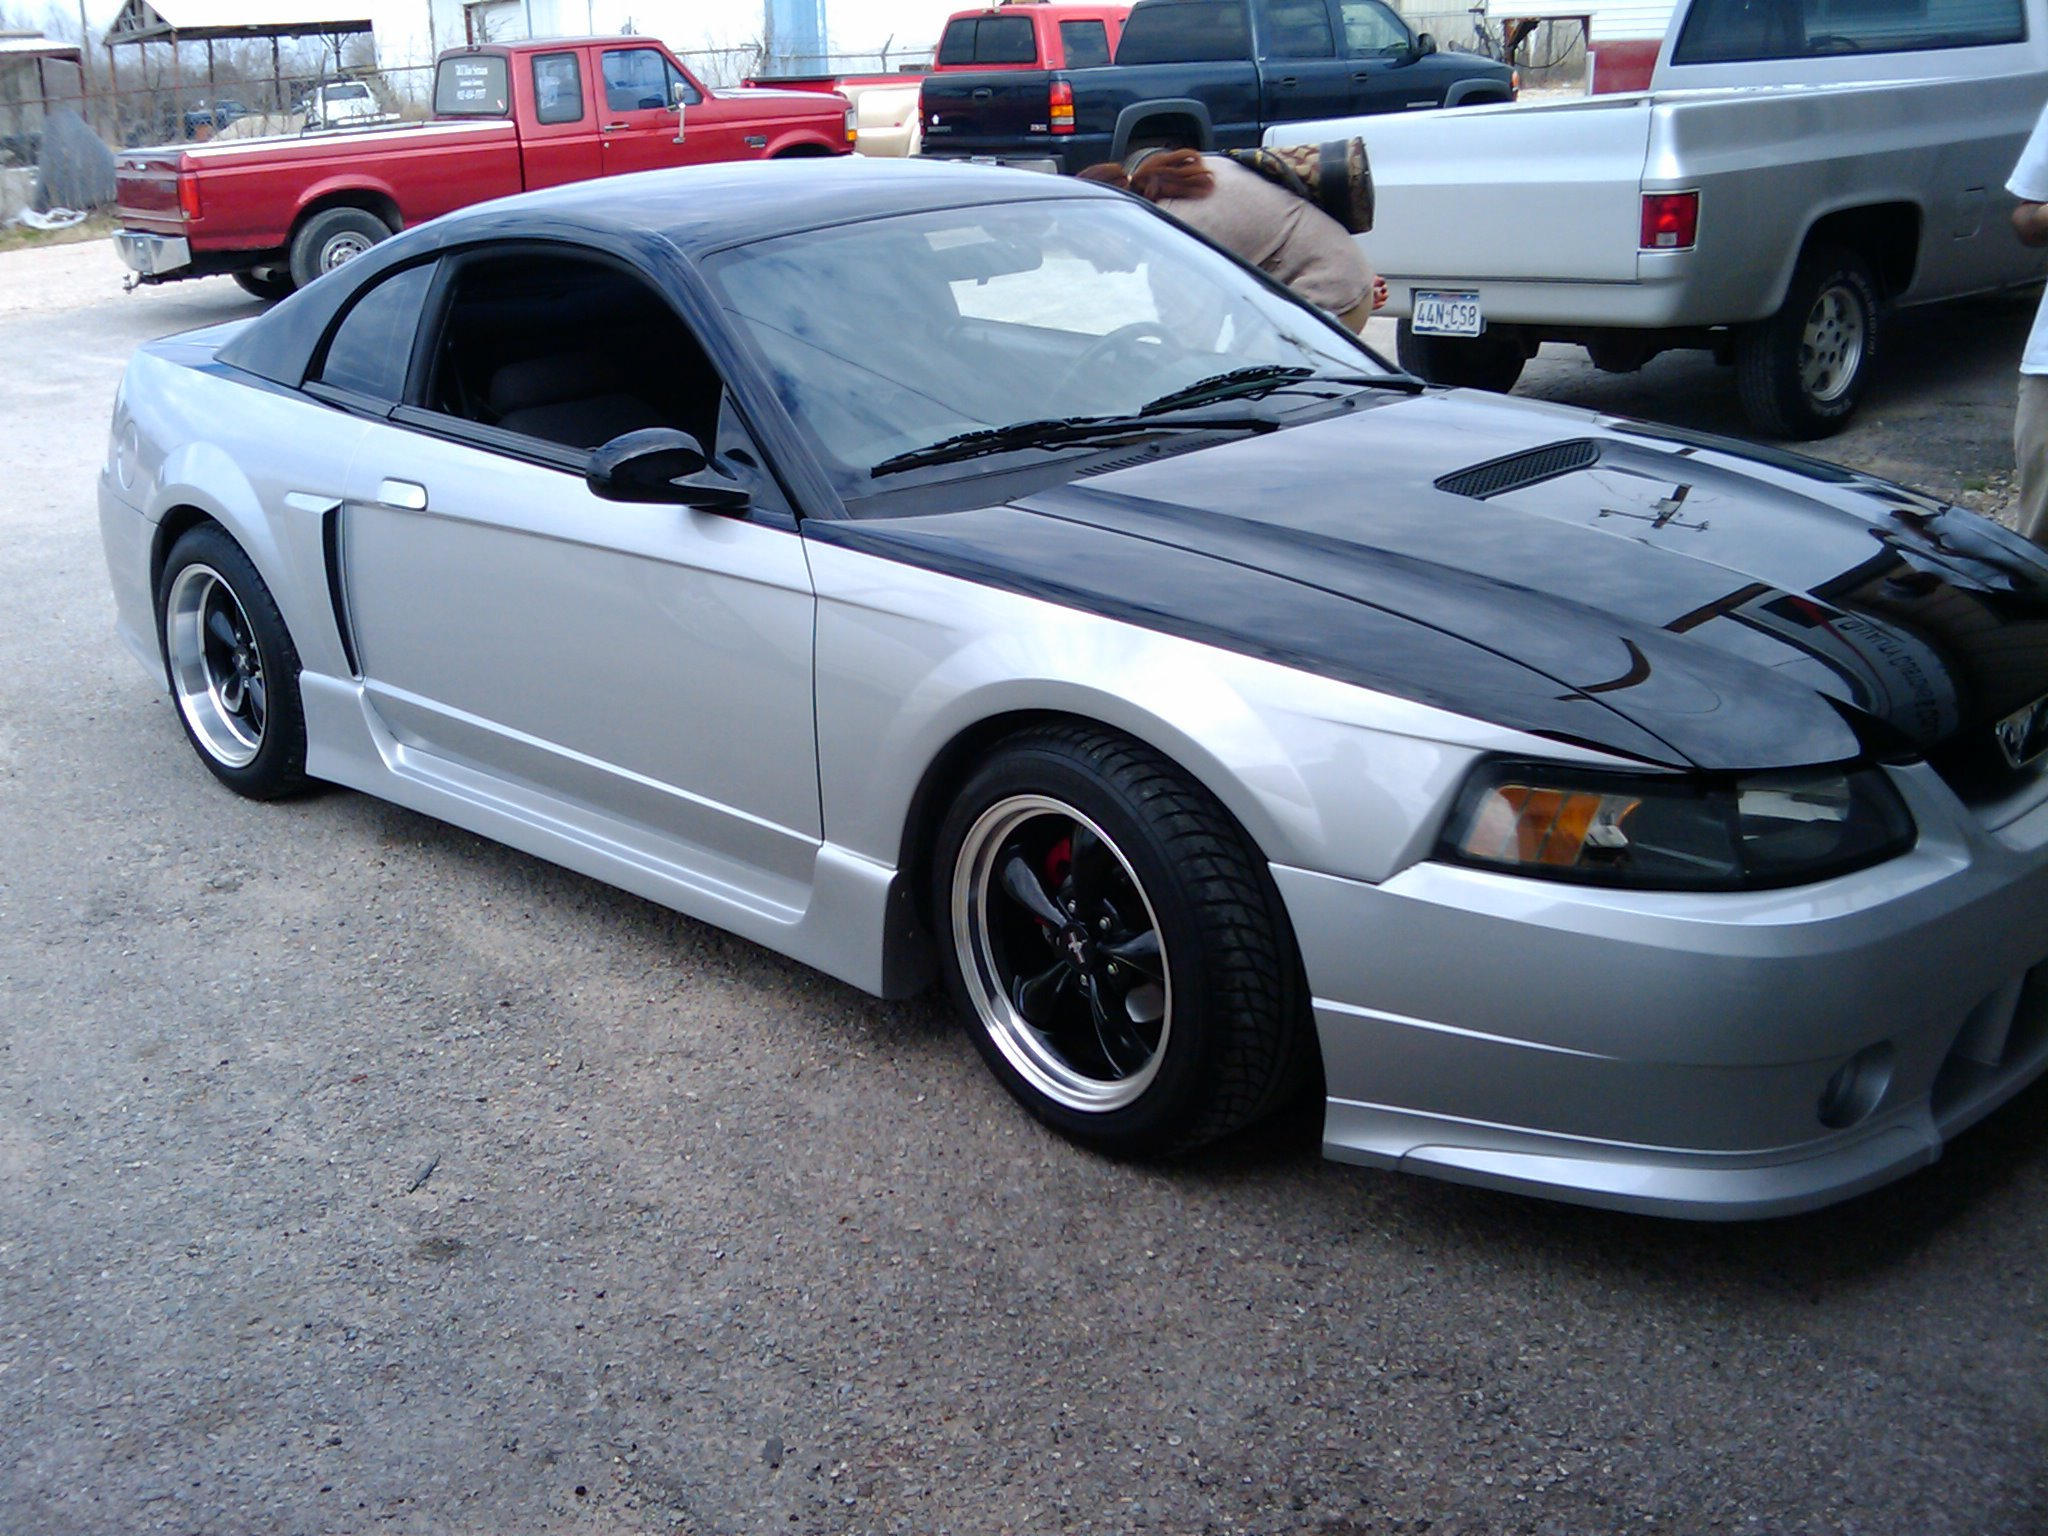 Ryan76731 2002 Ford Mustang Specs Photos Modification